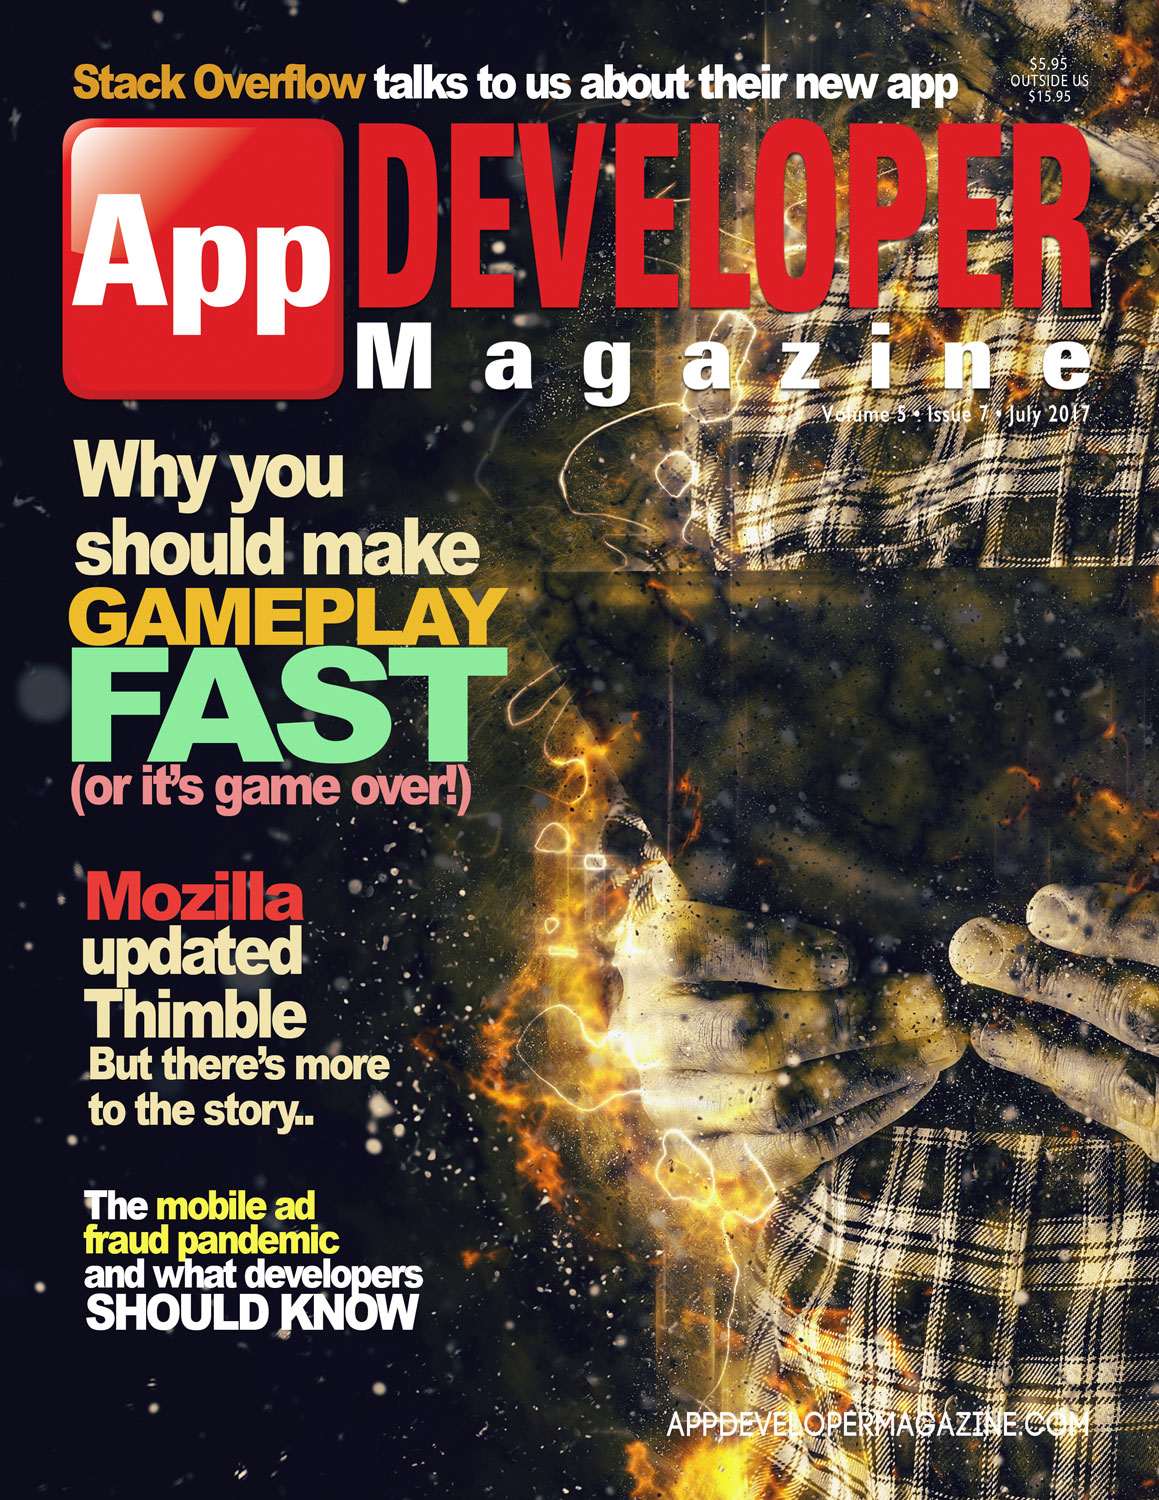 Read App Developer Magazine July 2017 issue